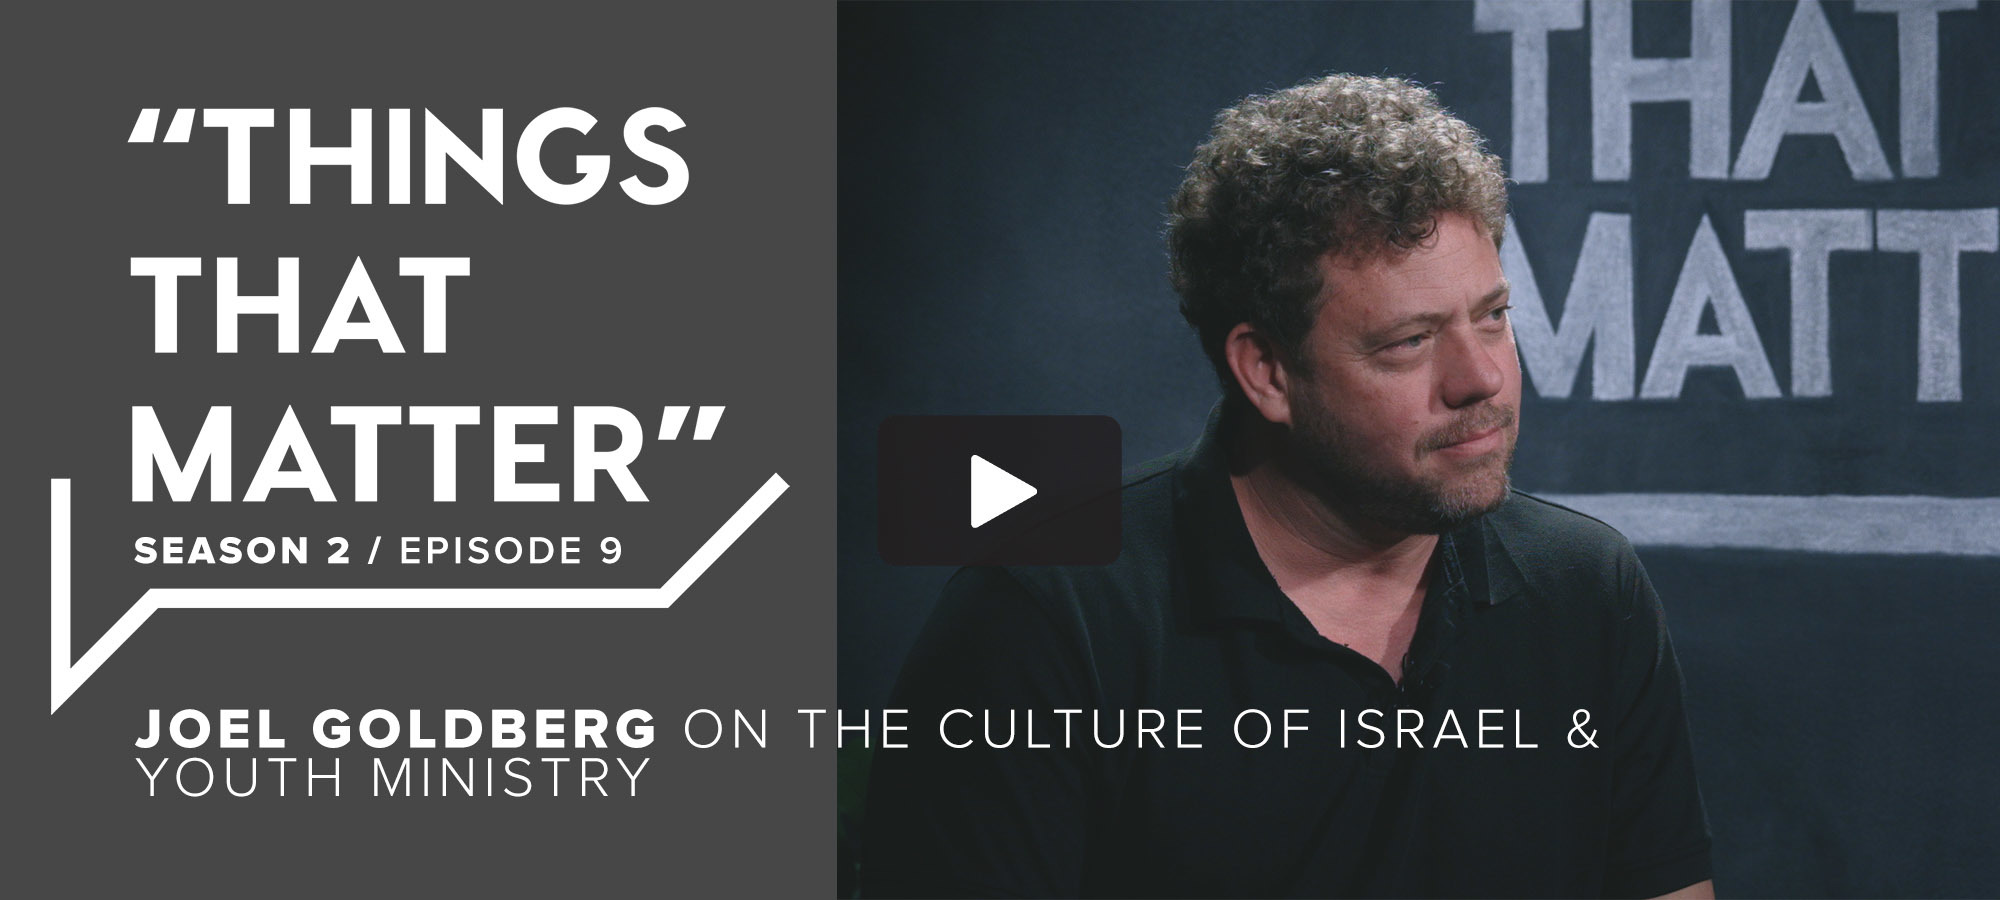 TTM S2 E9 - Joel Goldberg on the Culture of Israel & Youth Ministry